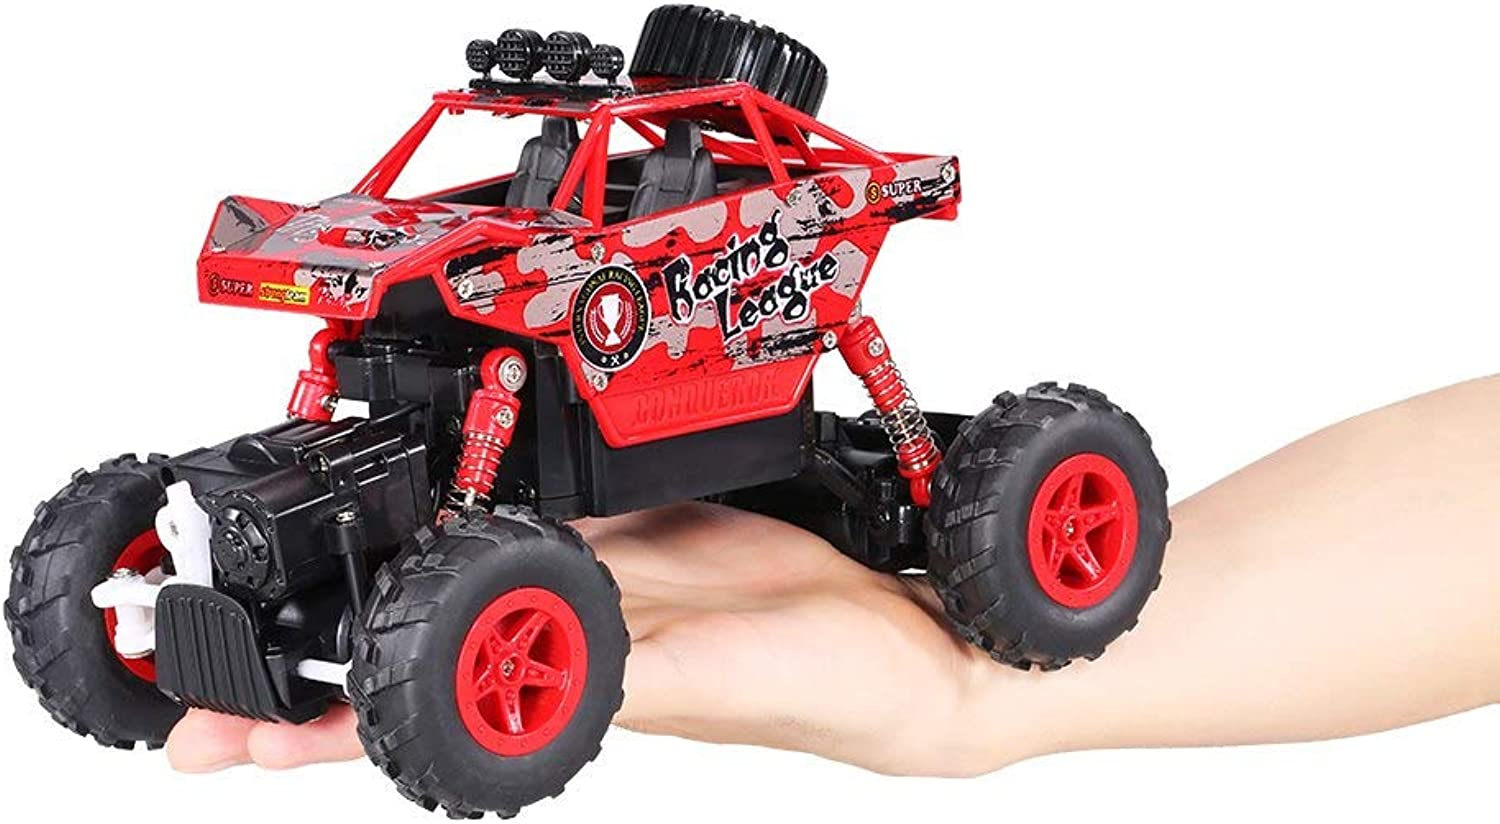 Generic Creative Double Star 1150 1 20 2.4G 4WD RTR King Turned Climb OffRoad Rock Crawler RC Car Red